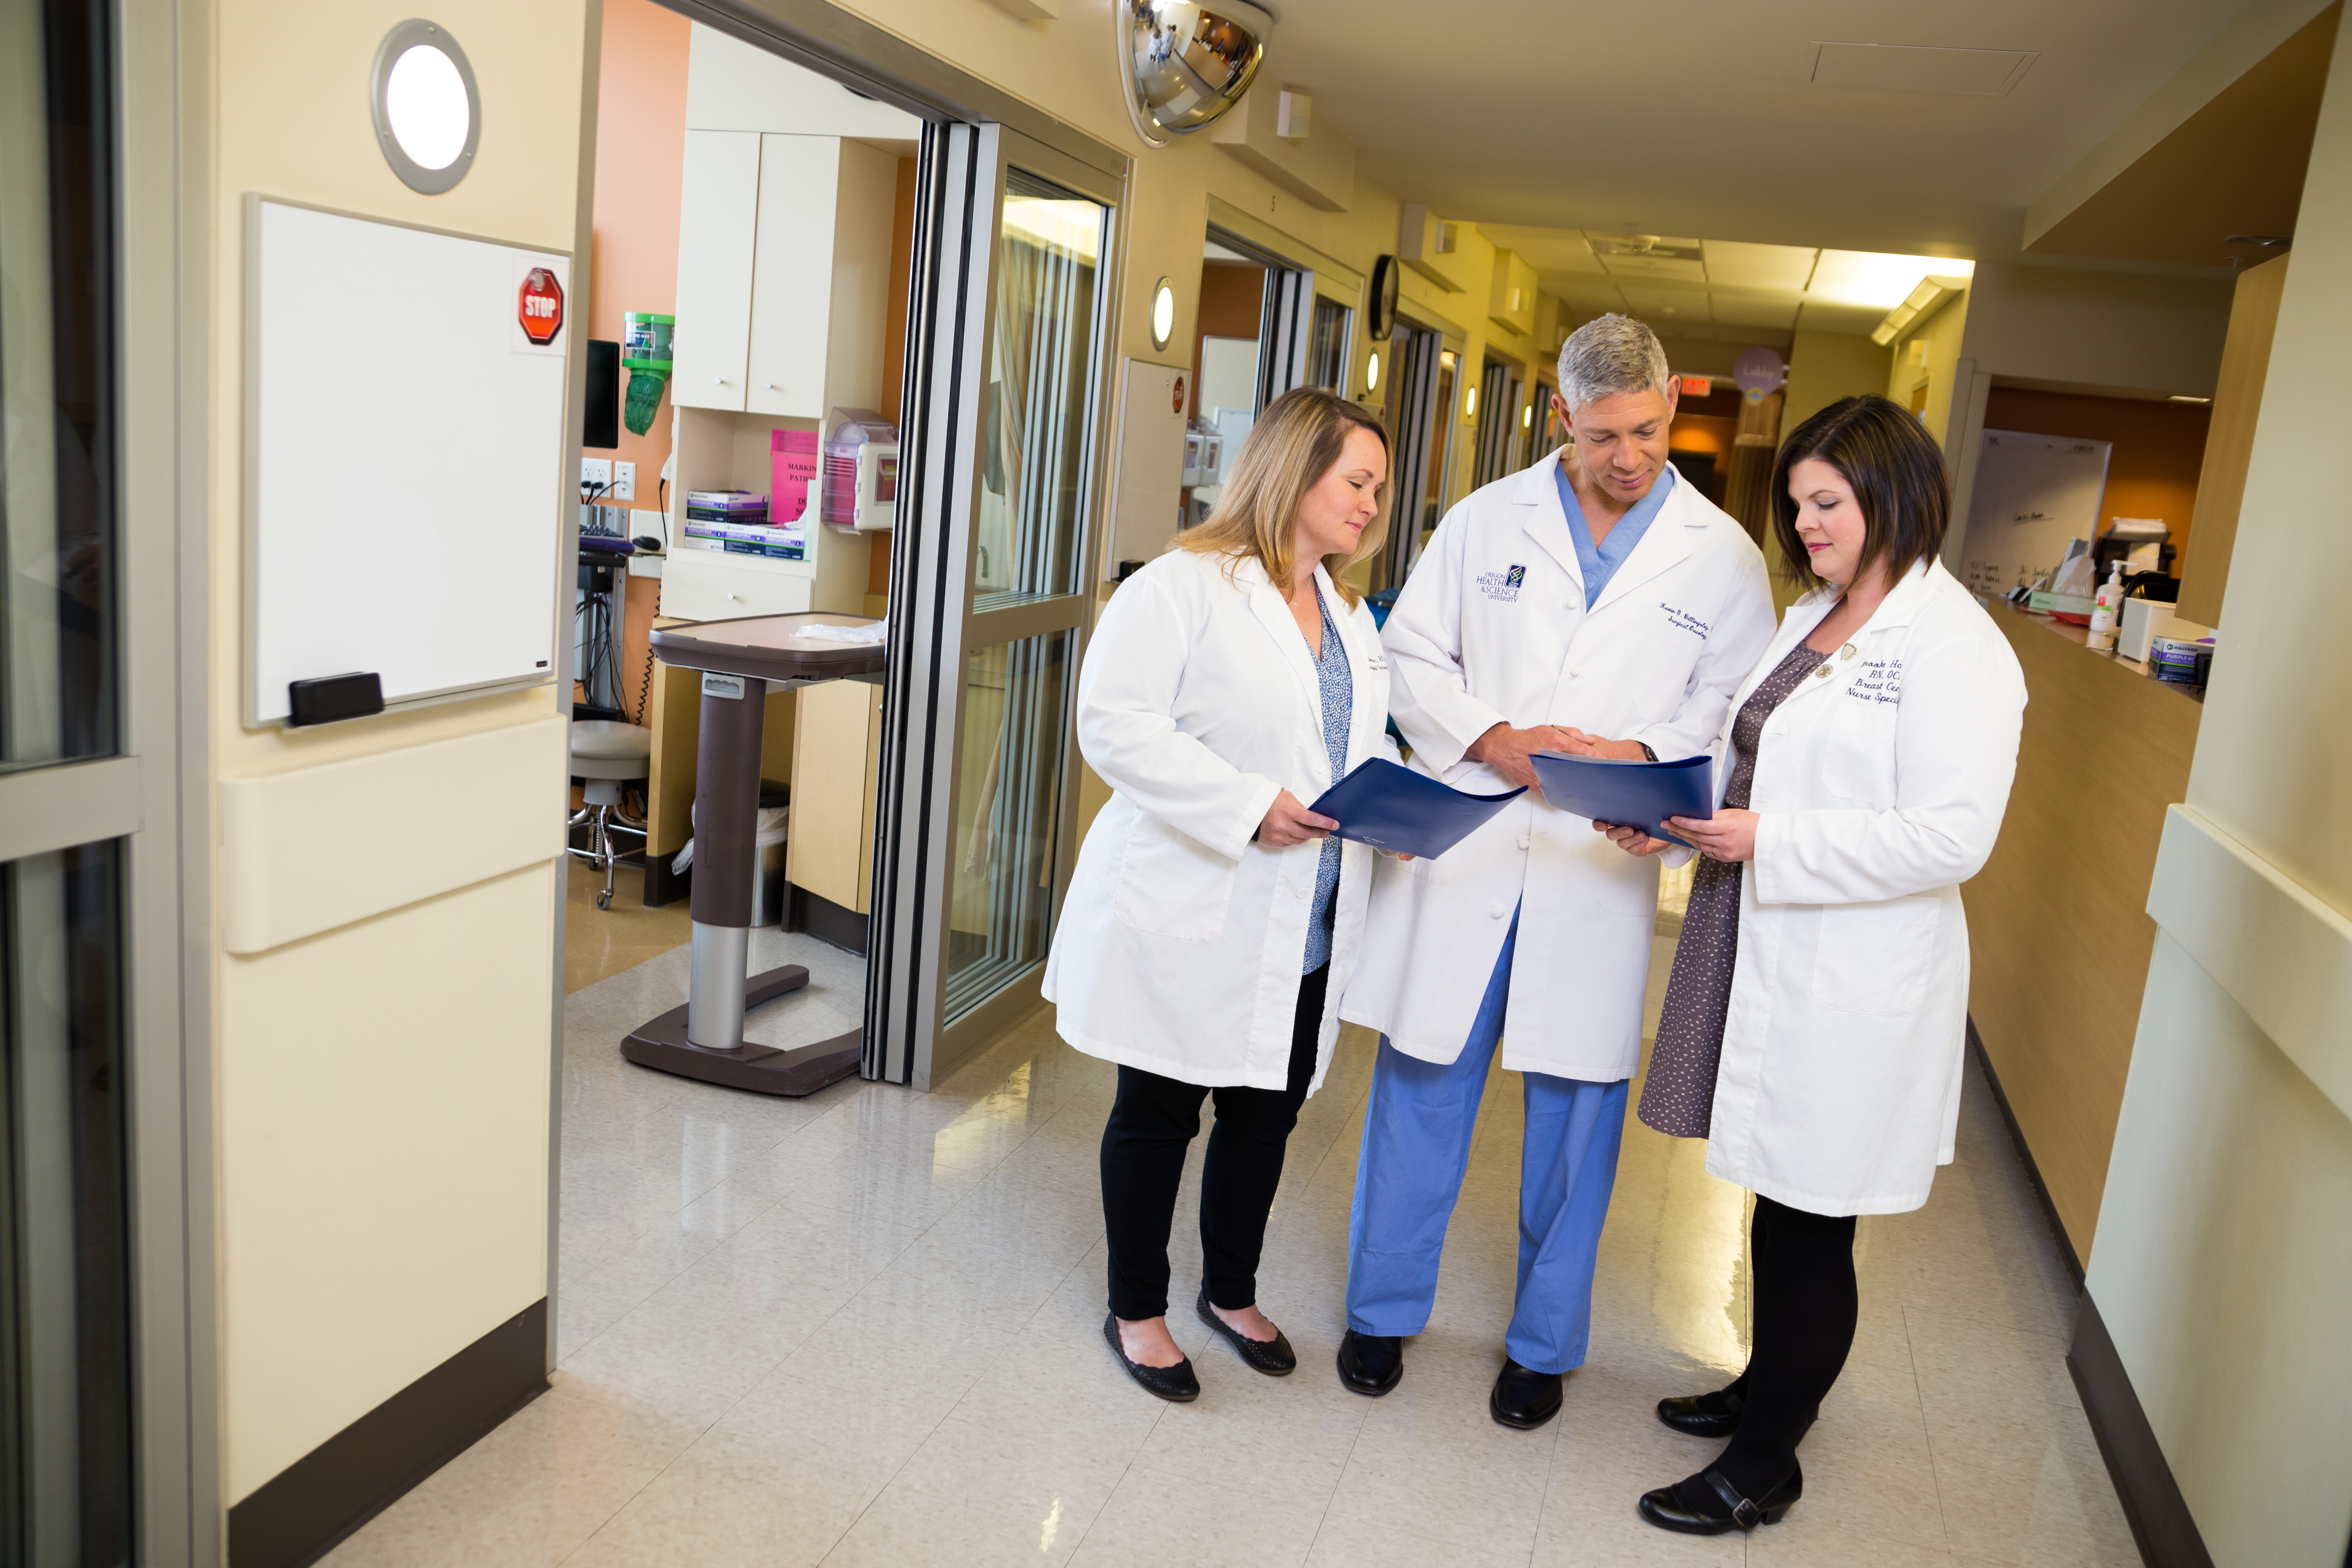 Dr. Kevin Billingsley (middle) consults with nurses Molly Barbar (left)  and Brooke Hambly.